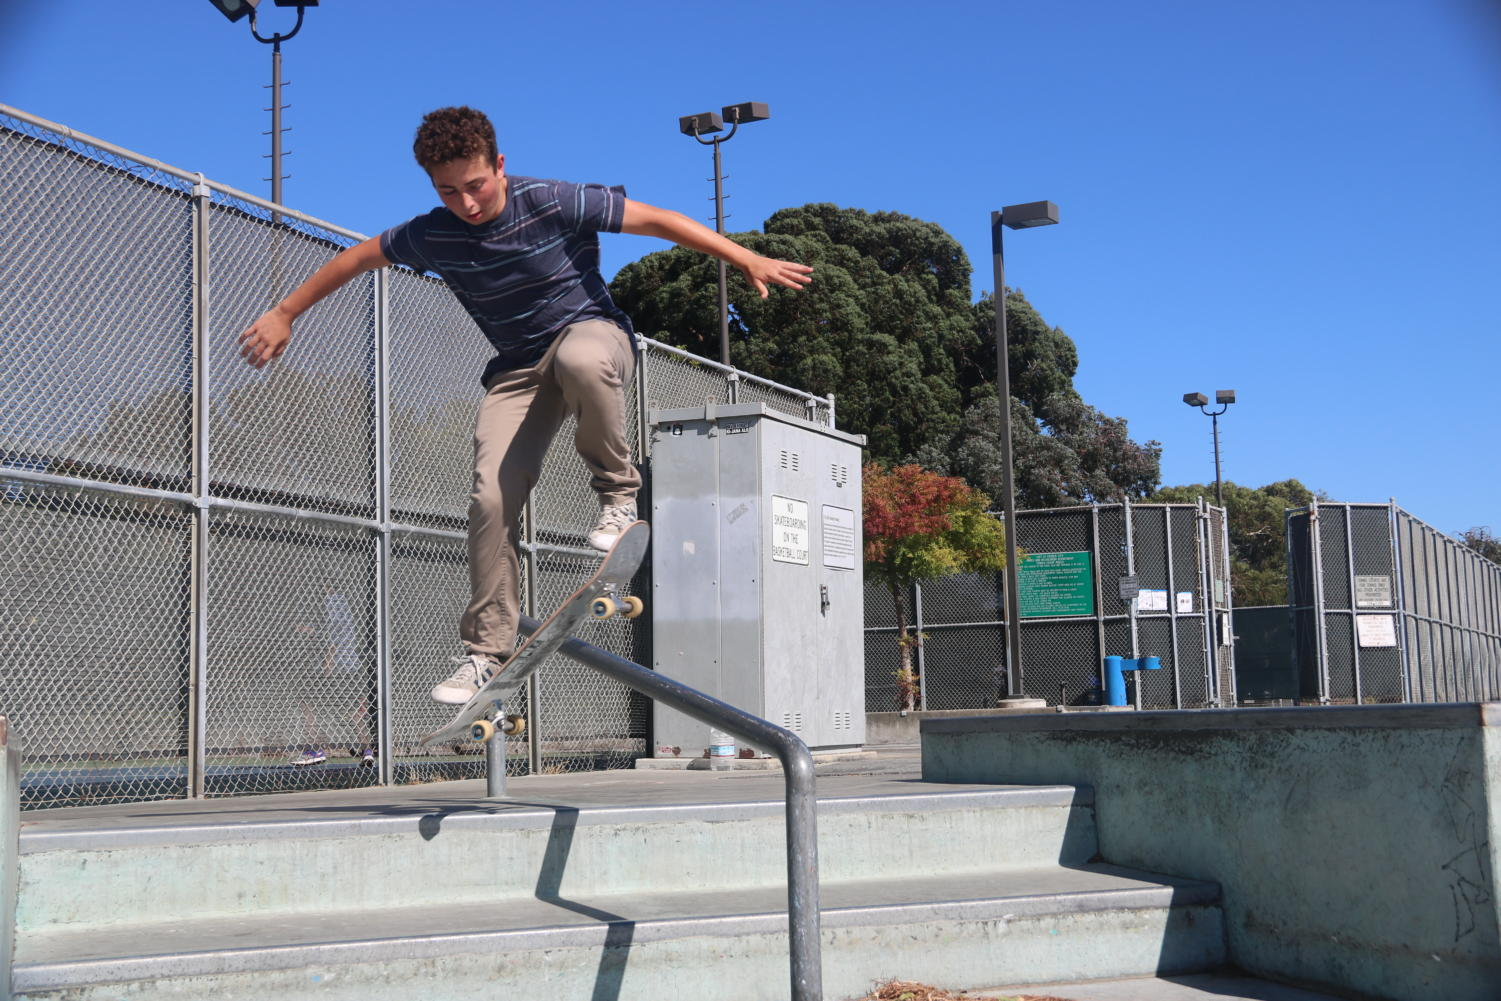 Freshman Joseph Matatyaou does a boardslide on a rail at the Foster City Skatepark. Matatyaou enjoys going to skateparks not only to skate, but also to meet new friends and be part of a community.